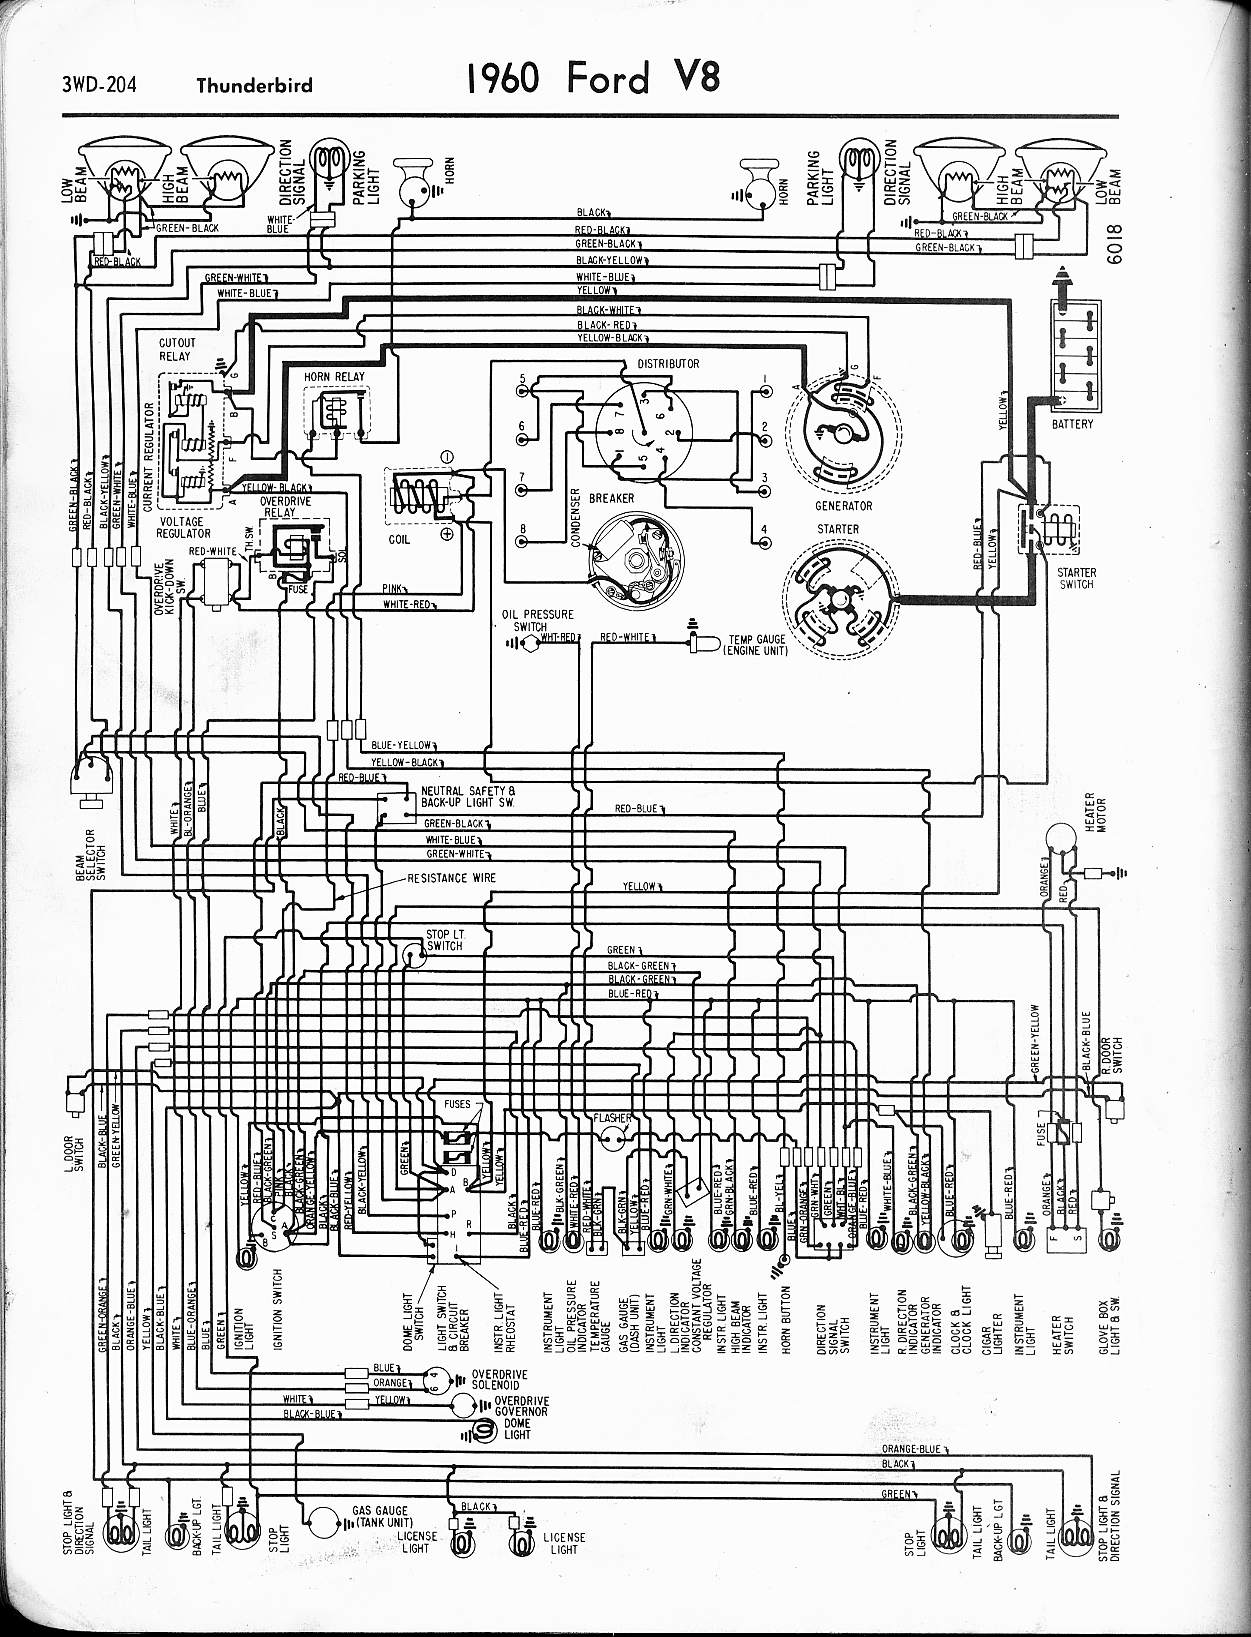 MWire5765 204 57 65 ford wiring diagrams 1965 ford f100 wiring schematics at crackthecode.co